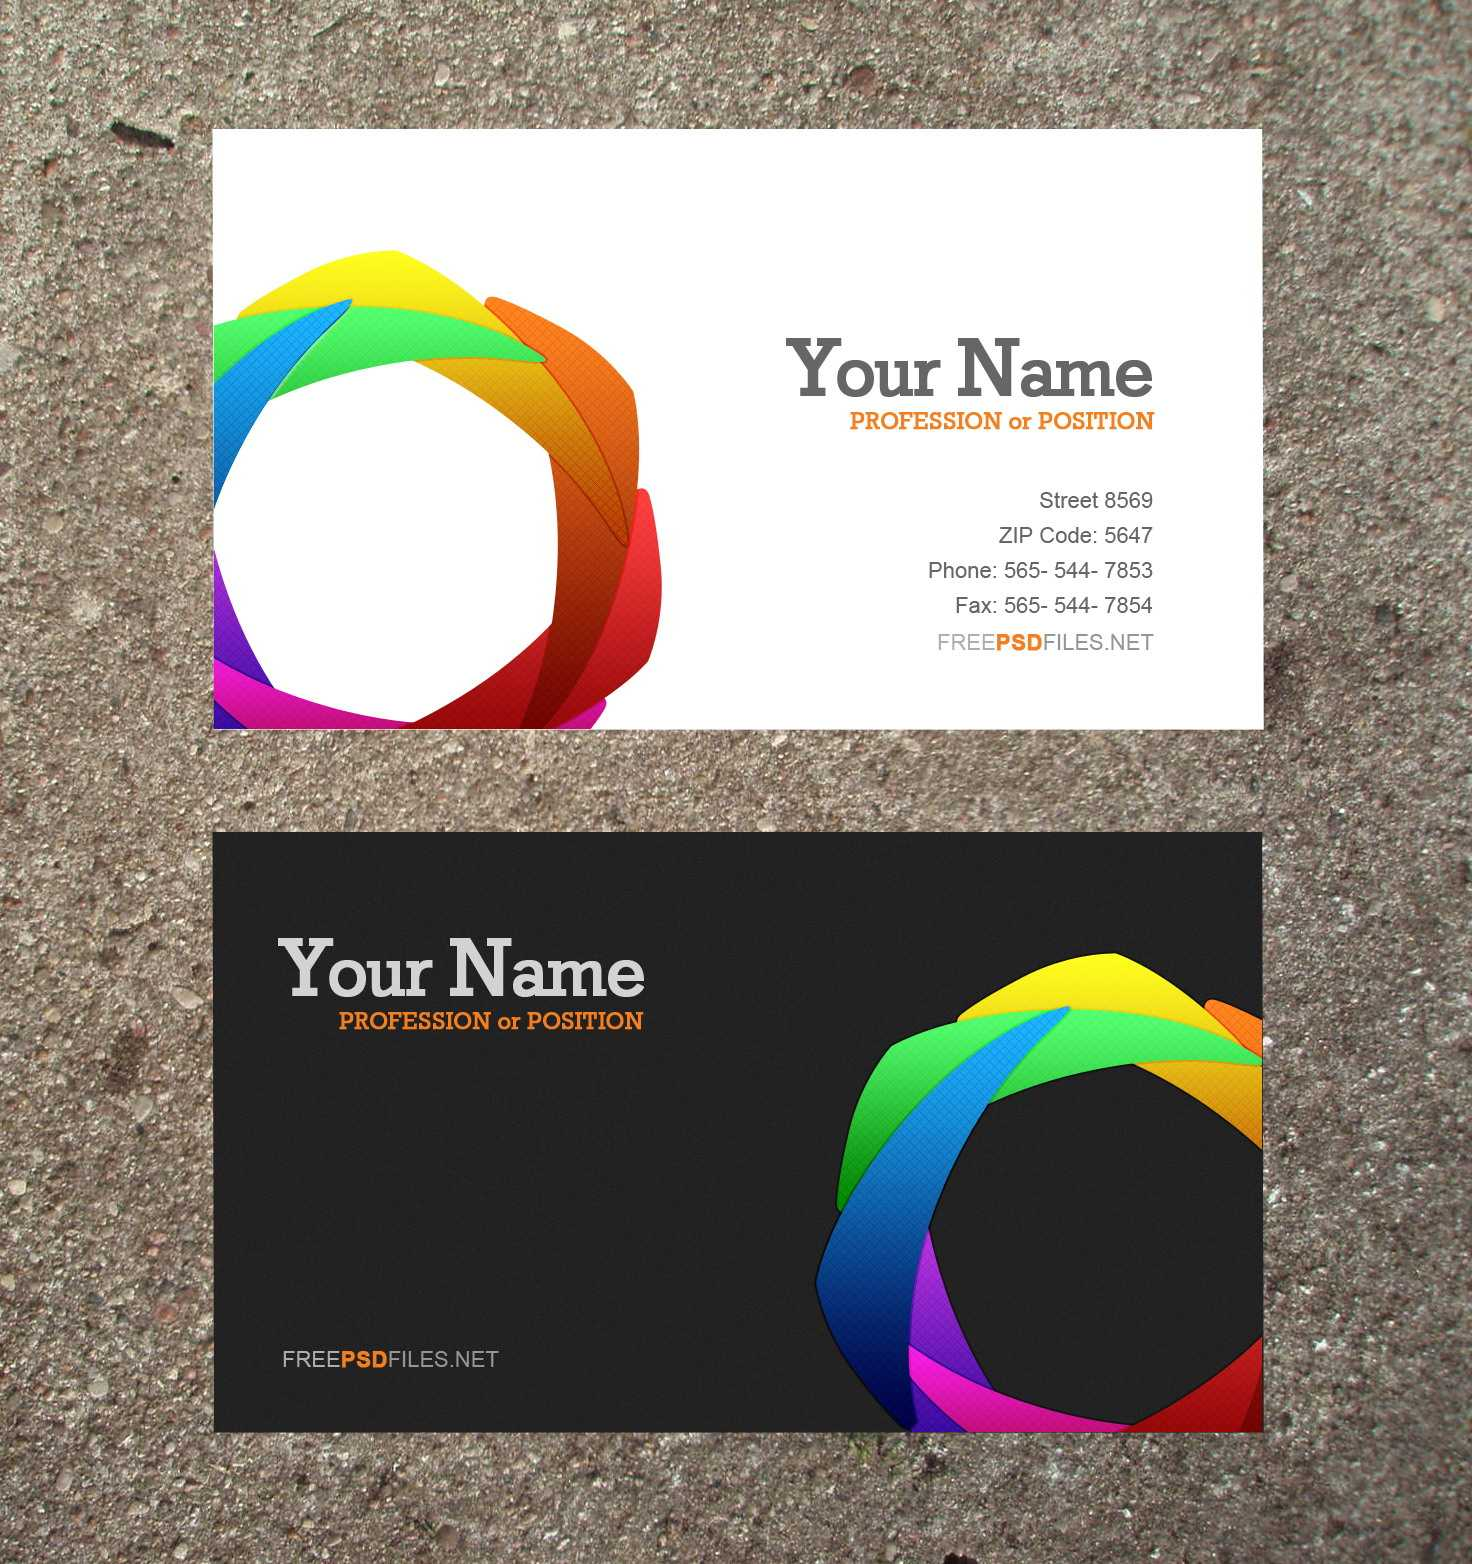 Business Card Free Templates Download   Business Card Sample For Blank Business Card Template Download